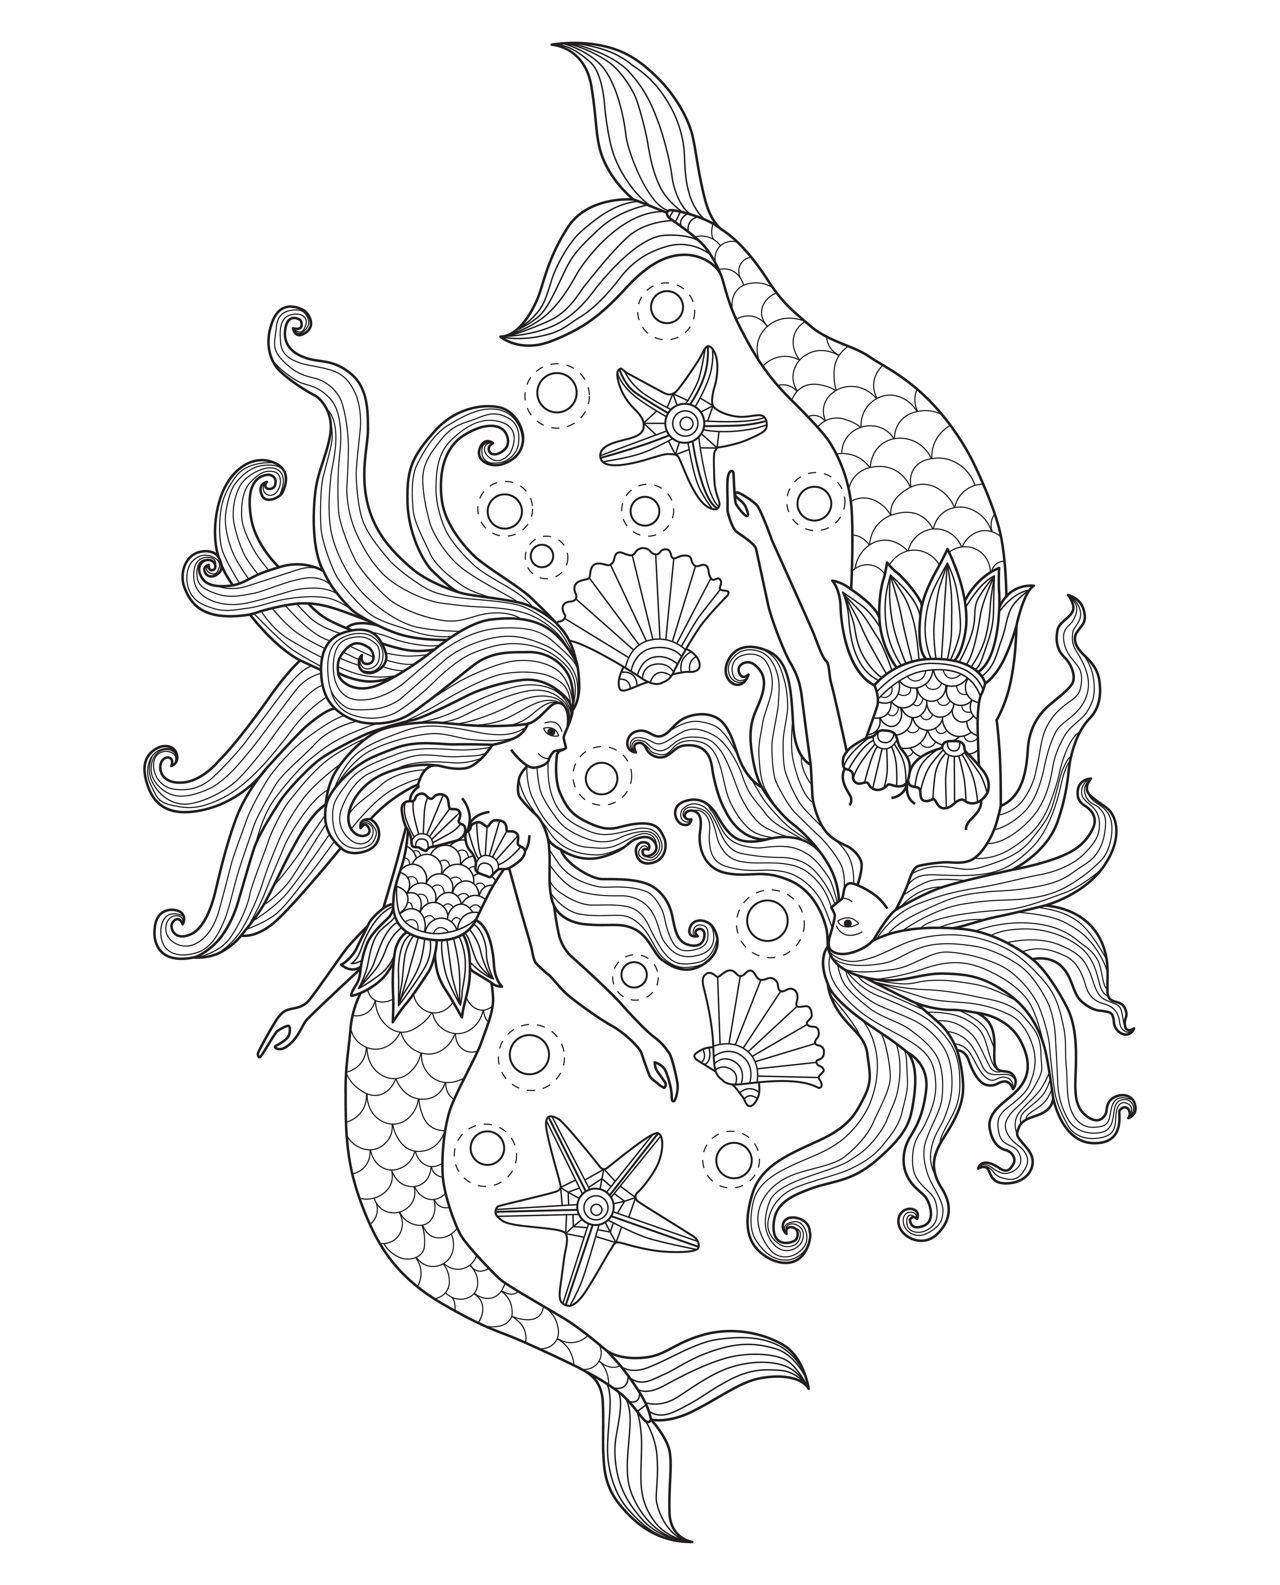 mermaid coloring pages print download find the suitable little mermaid mermaid coloring pages